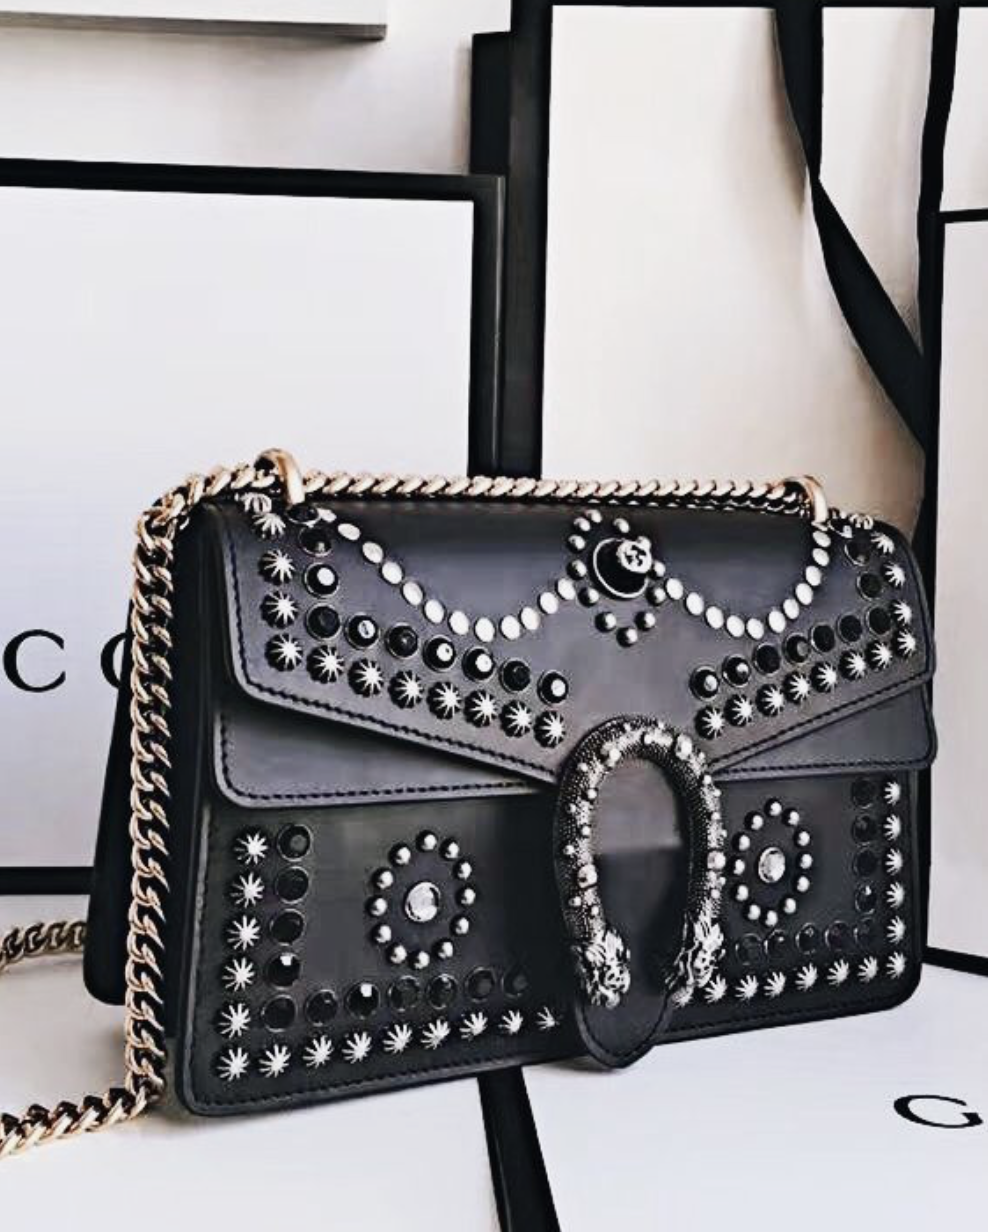 90c5d0beefd gucci dionysus studded leather crossbody bag | shoes + bags | Bag ...